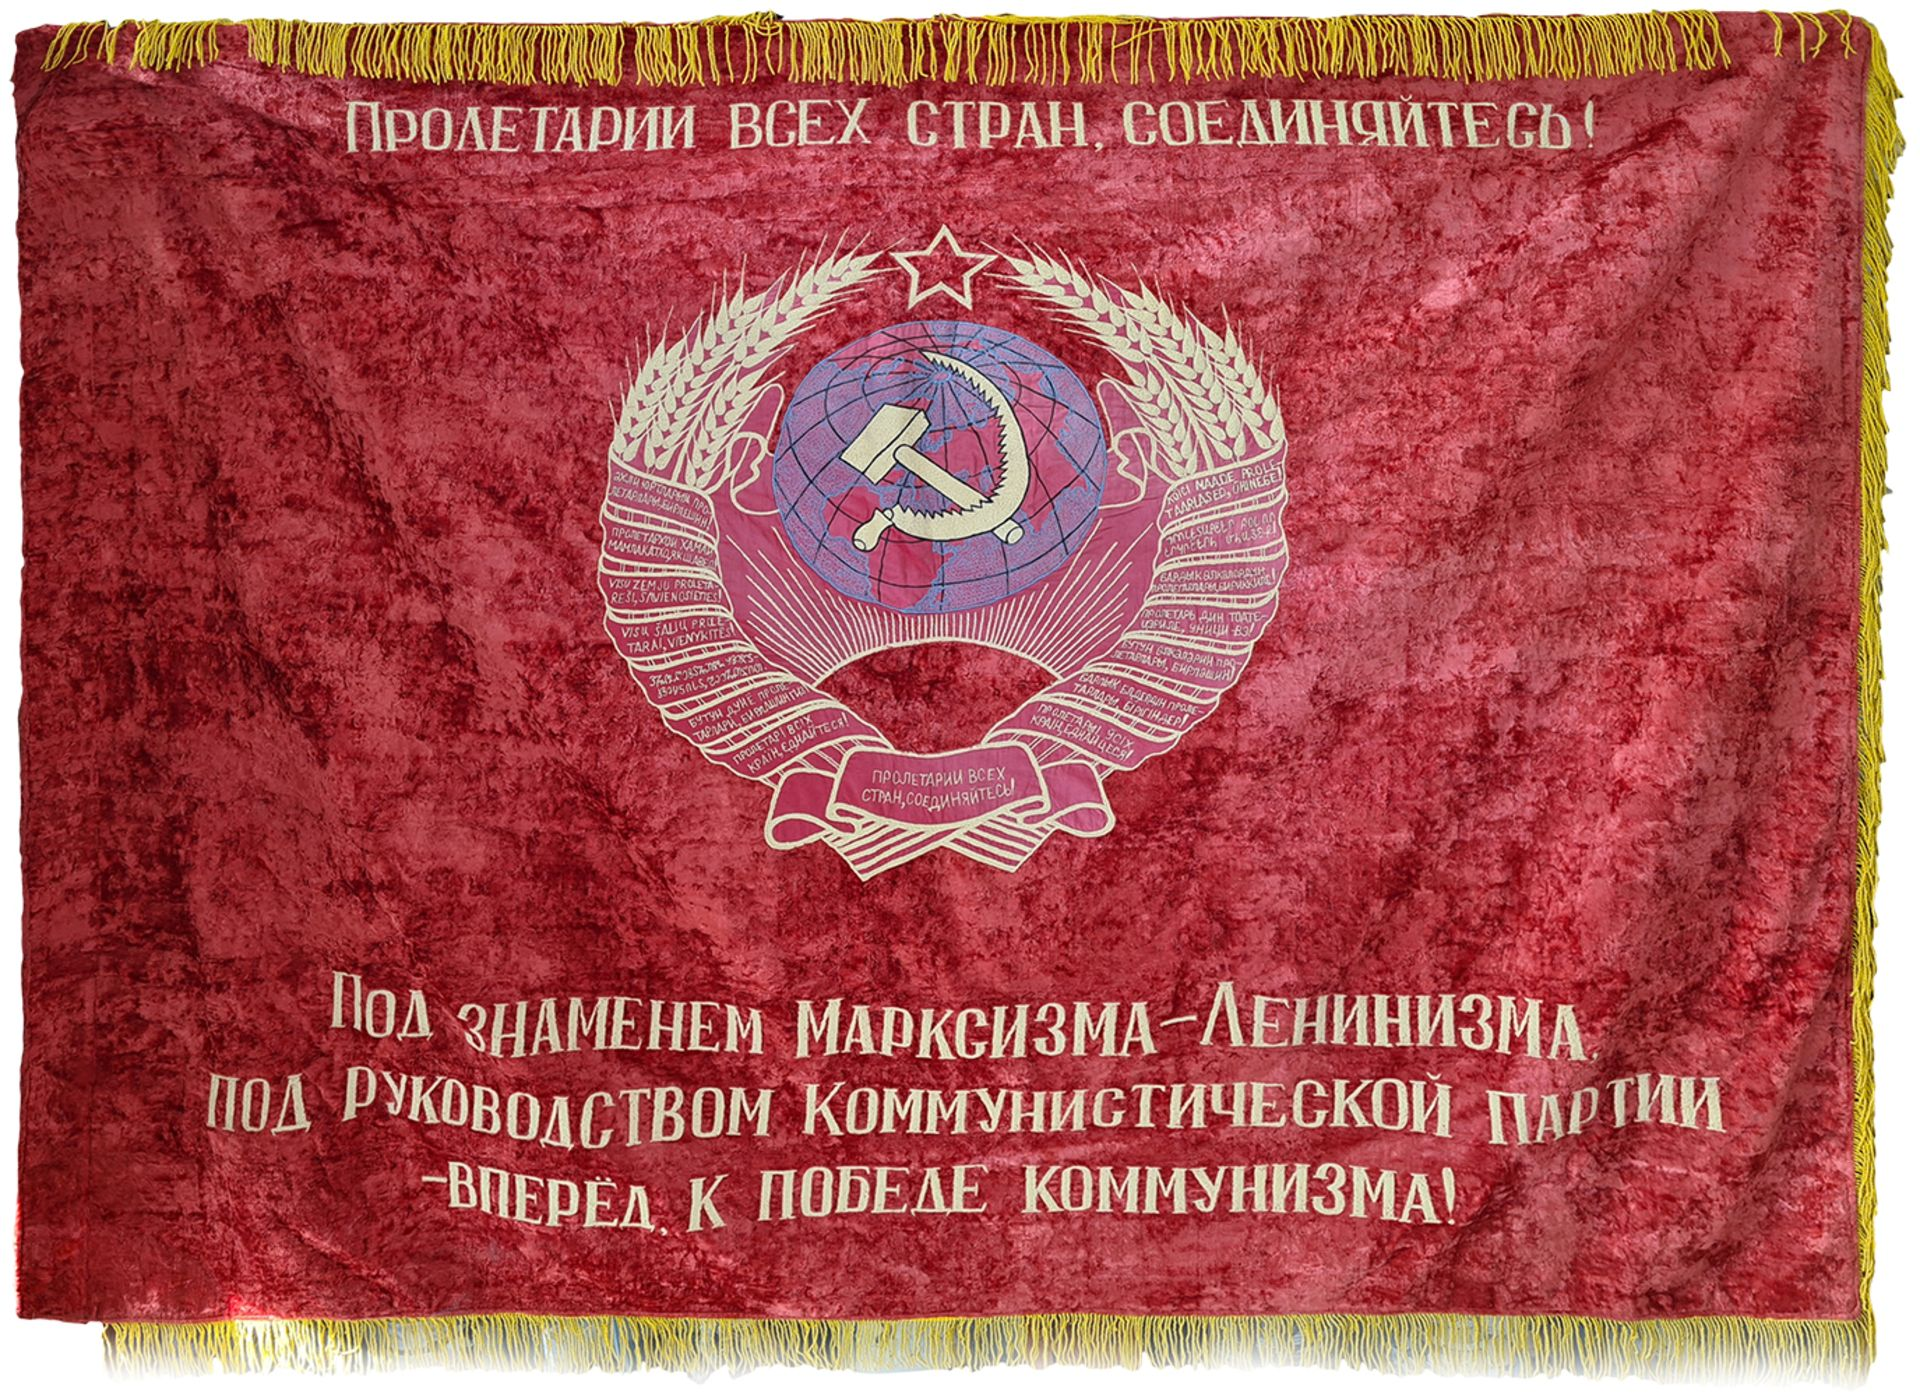 Soviet Union , Propaganda banner , Workers of the world, unite! , forward to communist victory